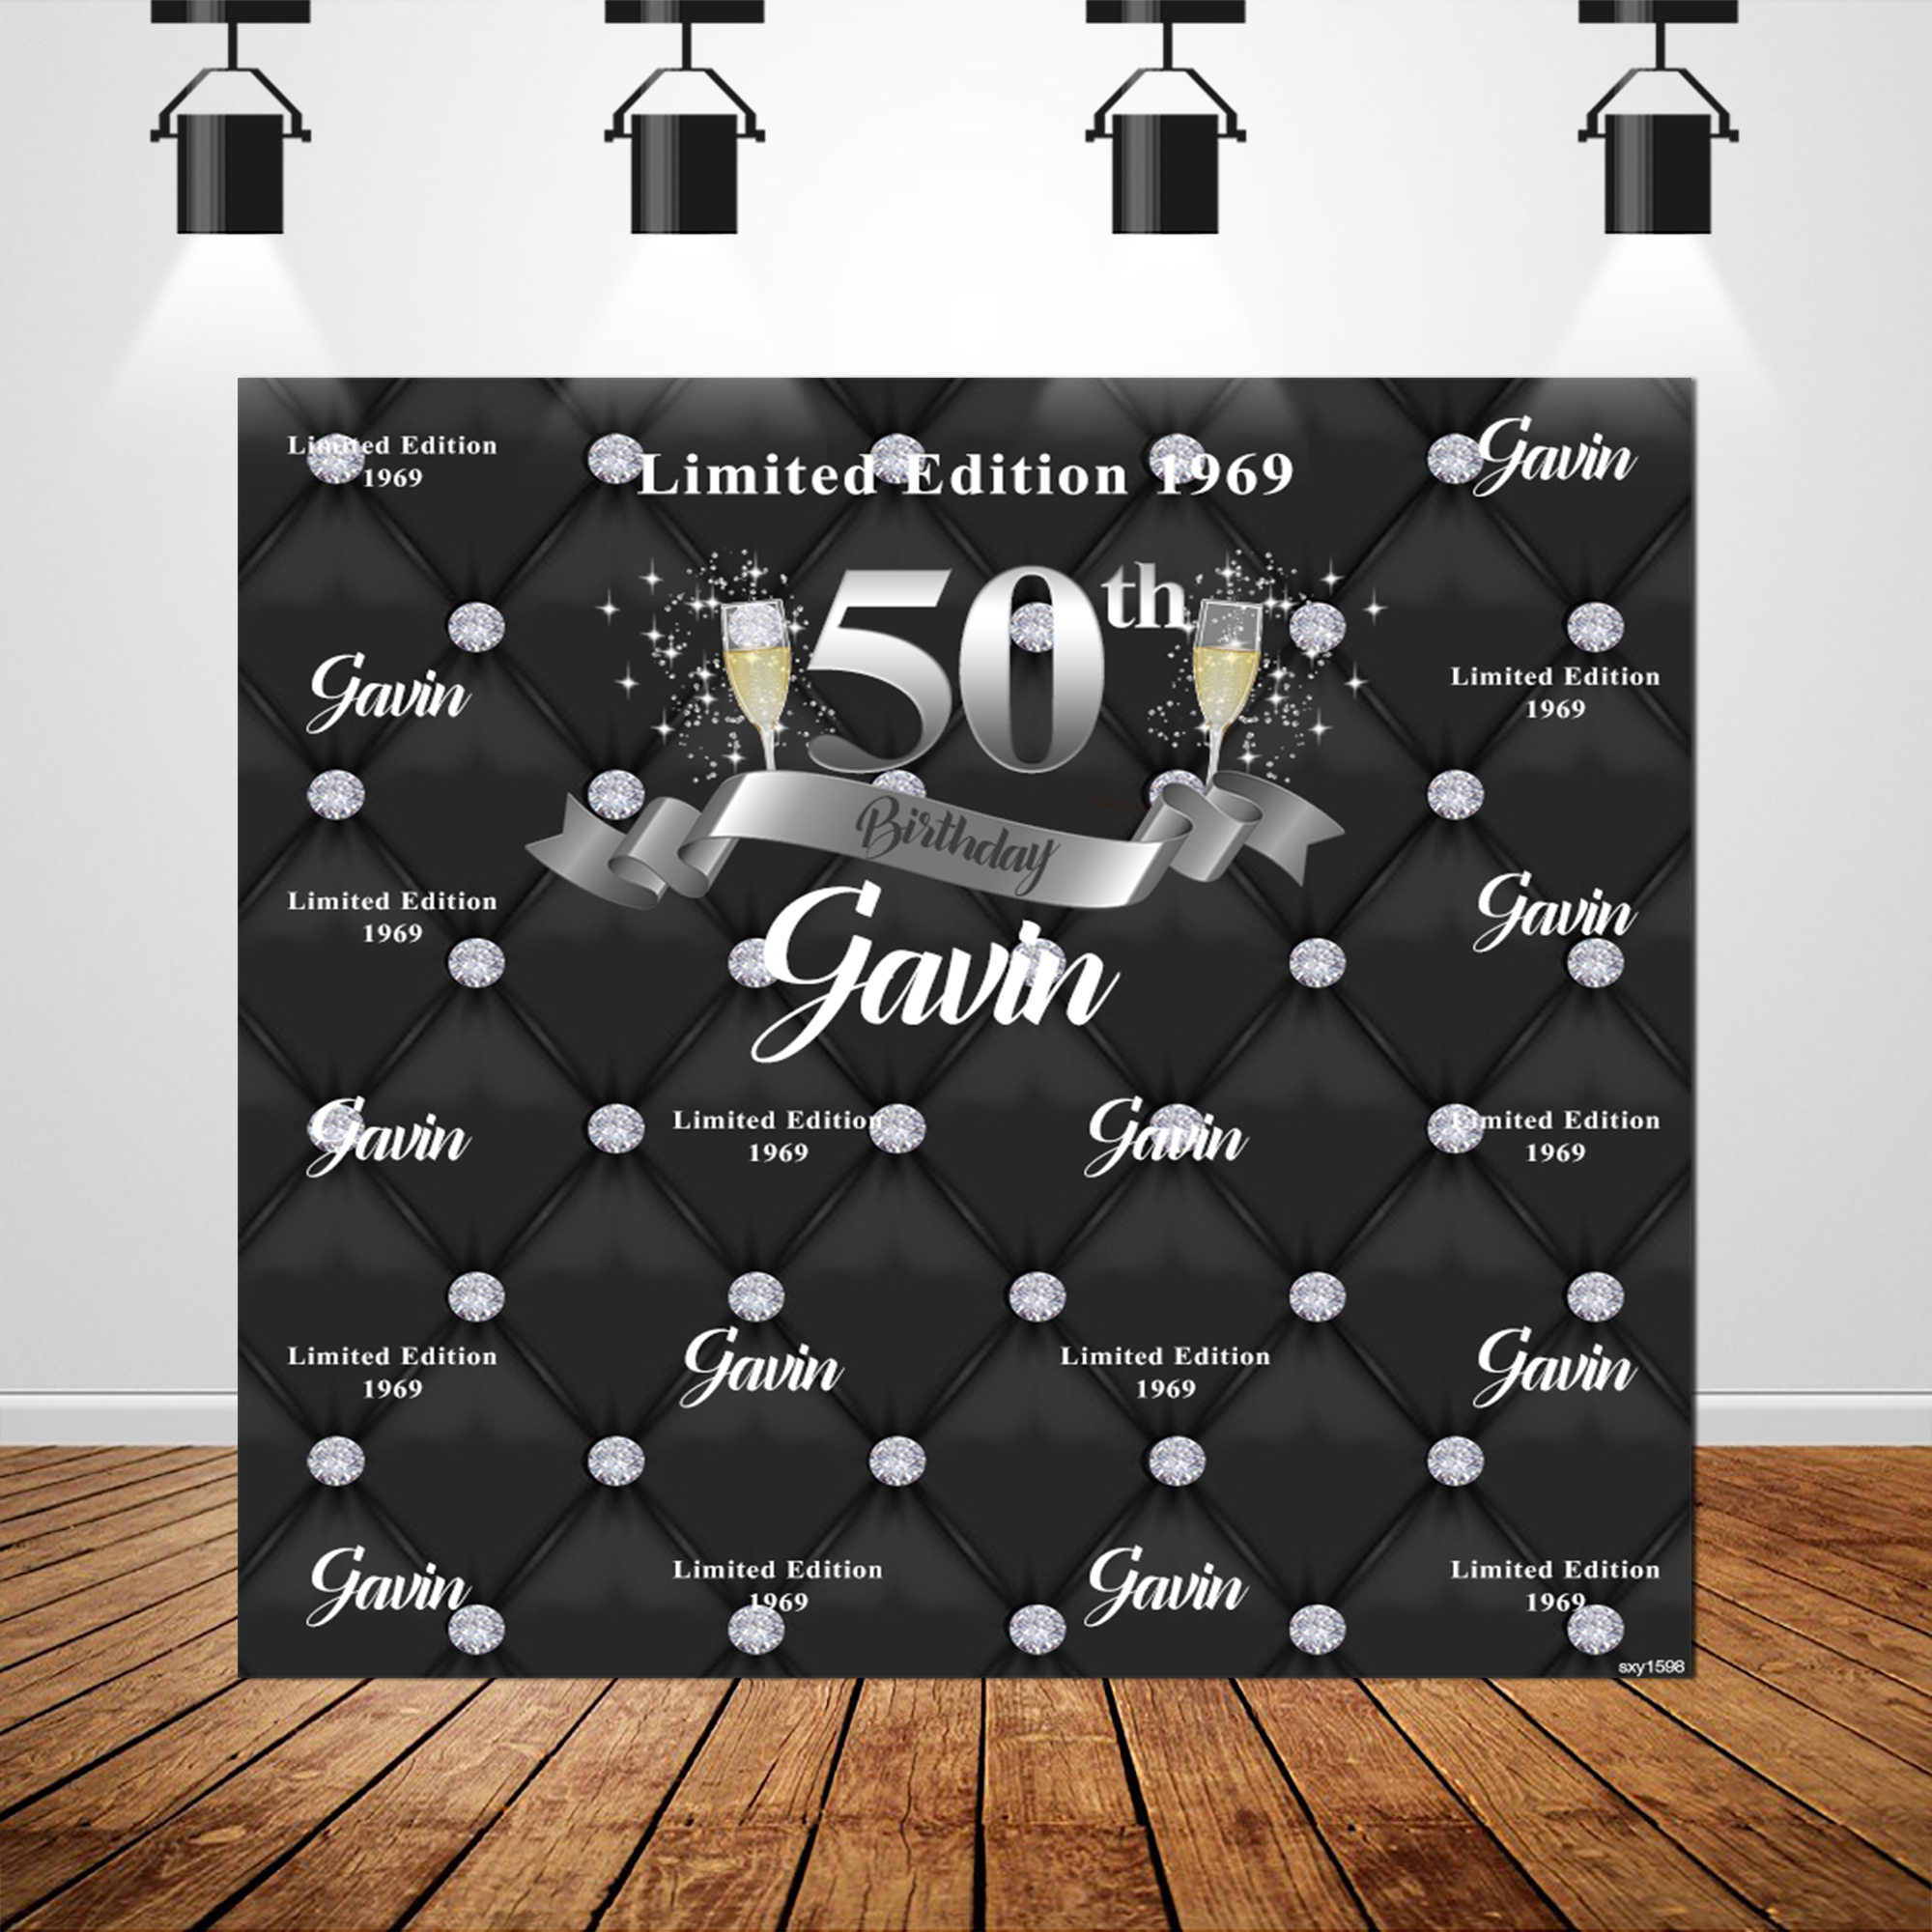 Sxy1598 Diamond Black Tufted Step and Repeat Background For Photo Studio Photocall Custom Silver 50th Birthday Backdrops 10x10ft image